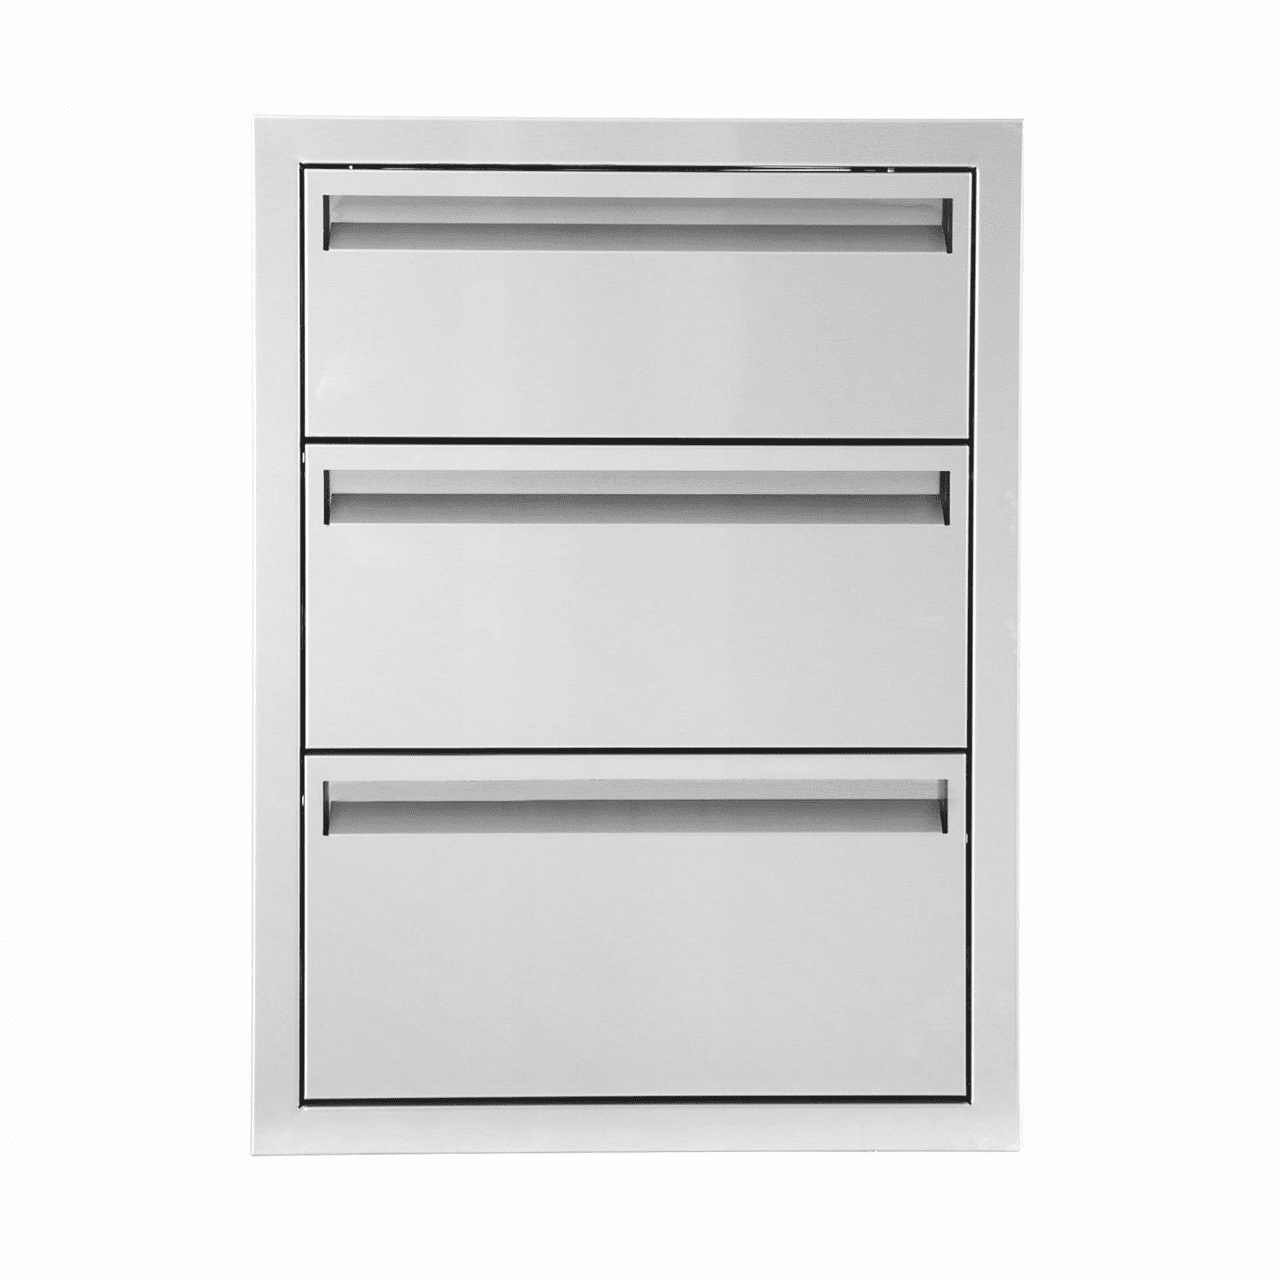 PCM 301 Series 3 Drawer Stainless Steel